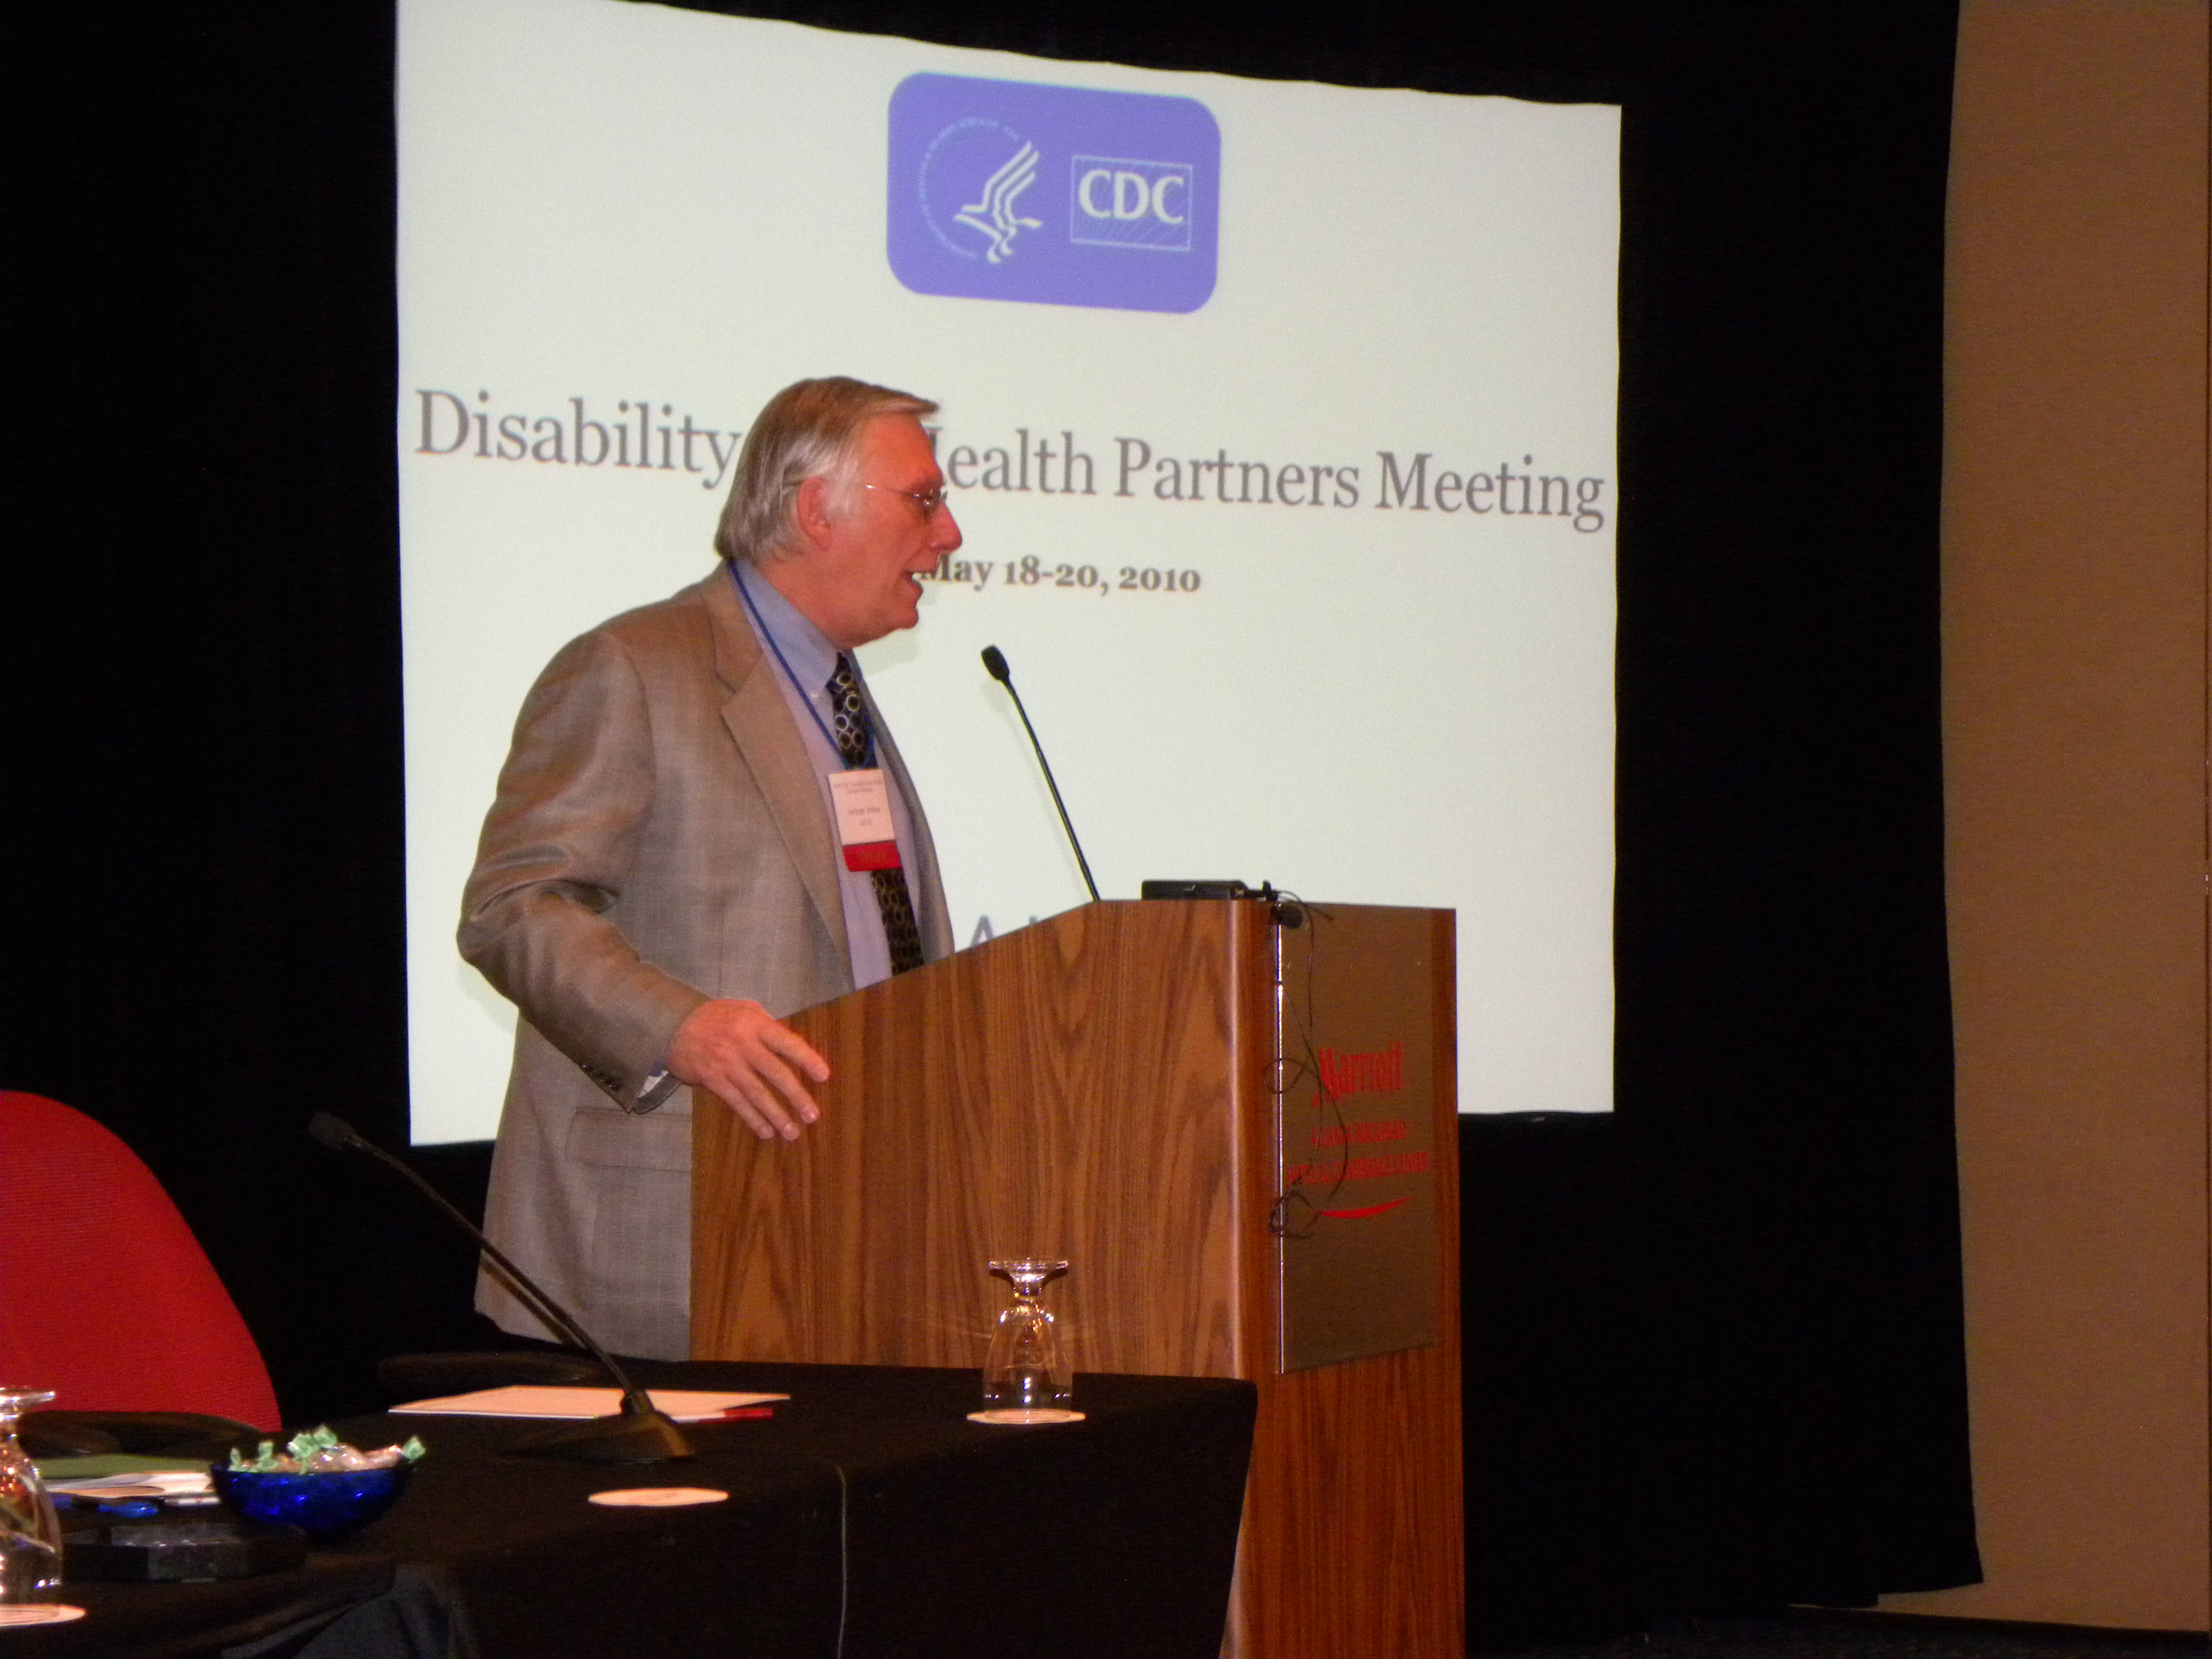 2010 Disability and Health Partners Meeting Proceedings Available